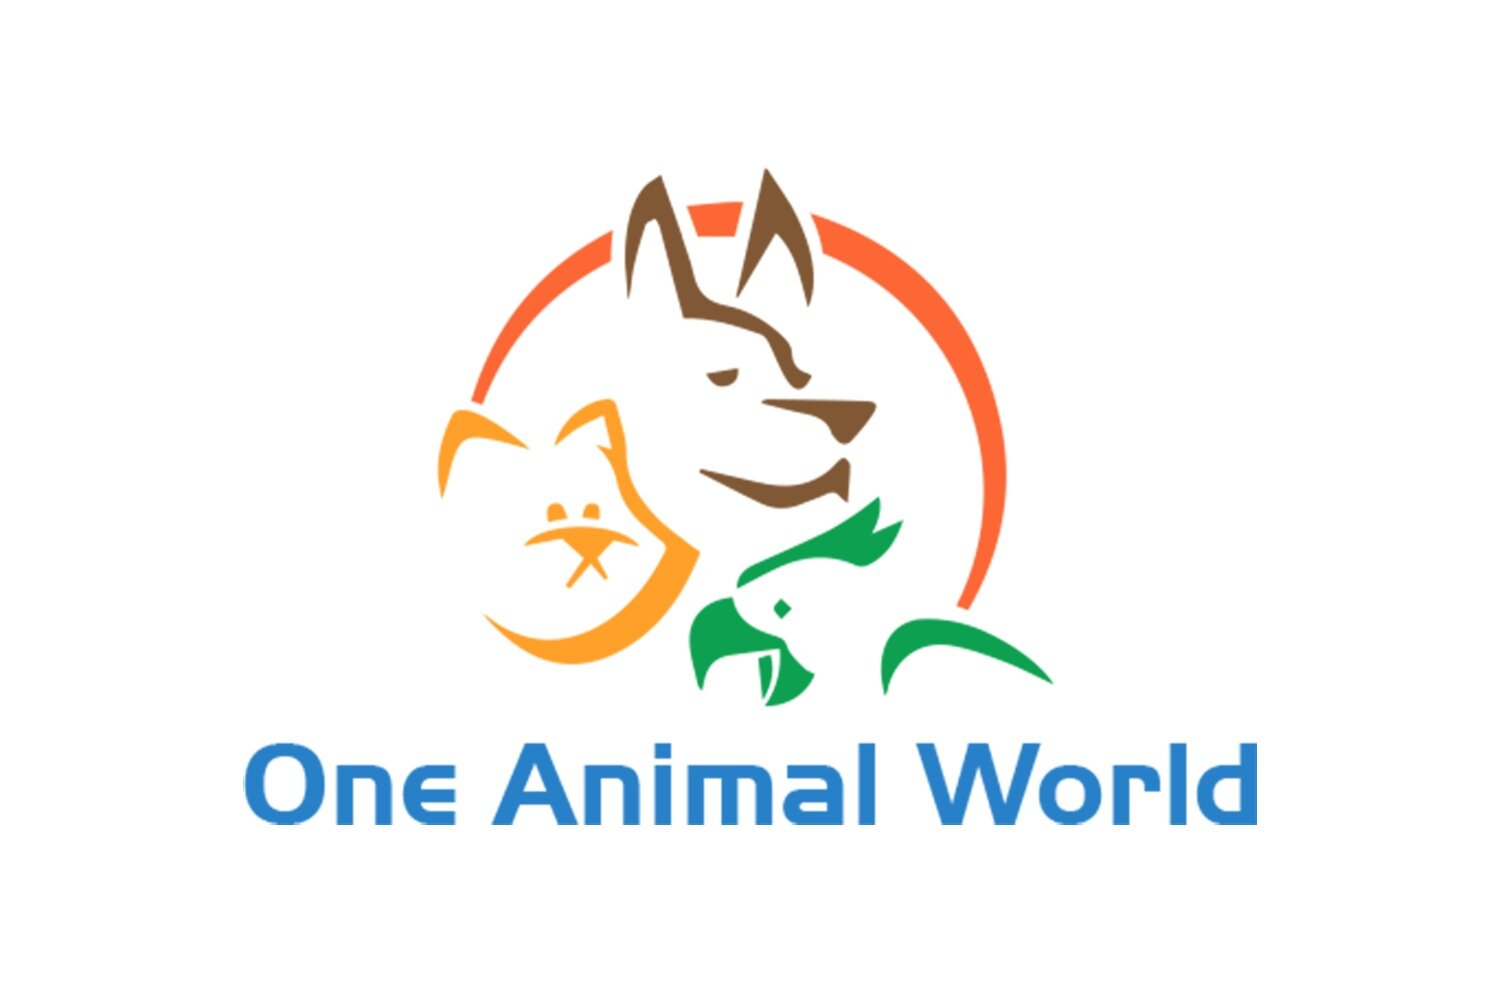 One Animal World